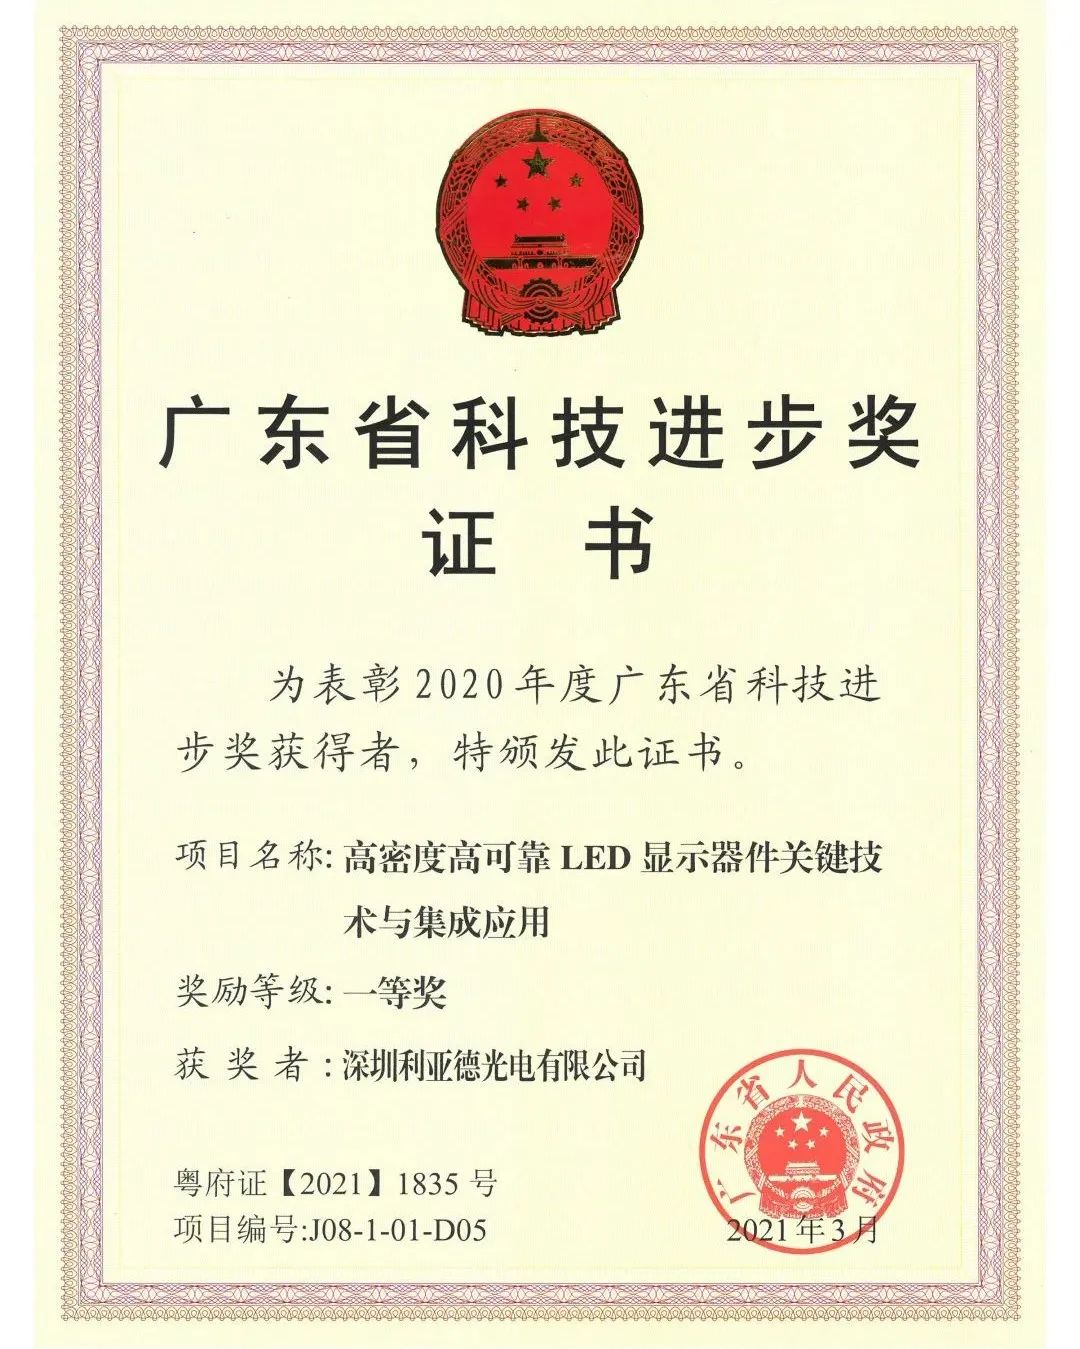 Leyard Claims the First Prize of Guangdong Science and Technology Progress Award